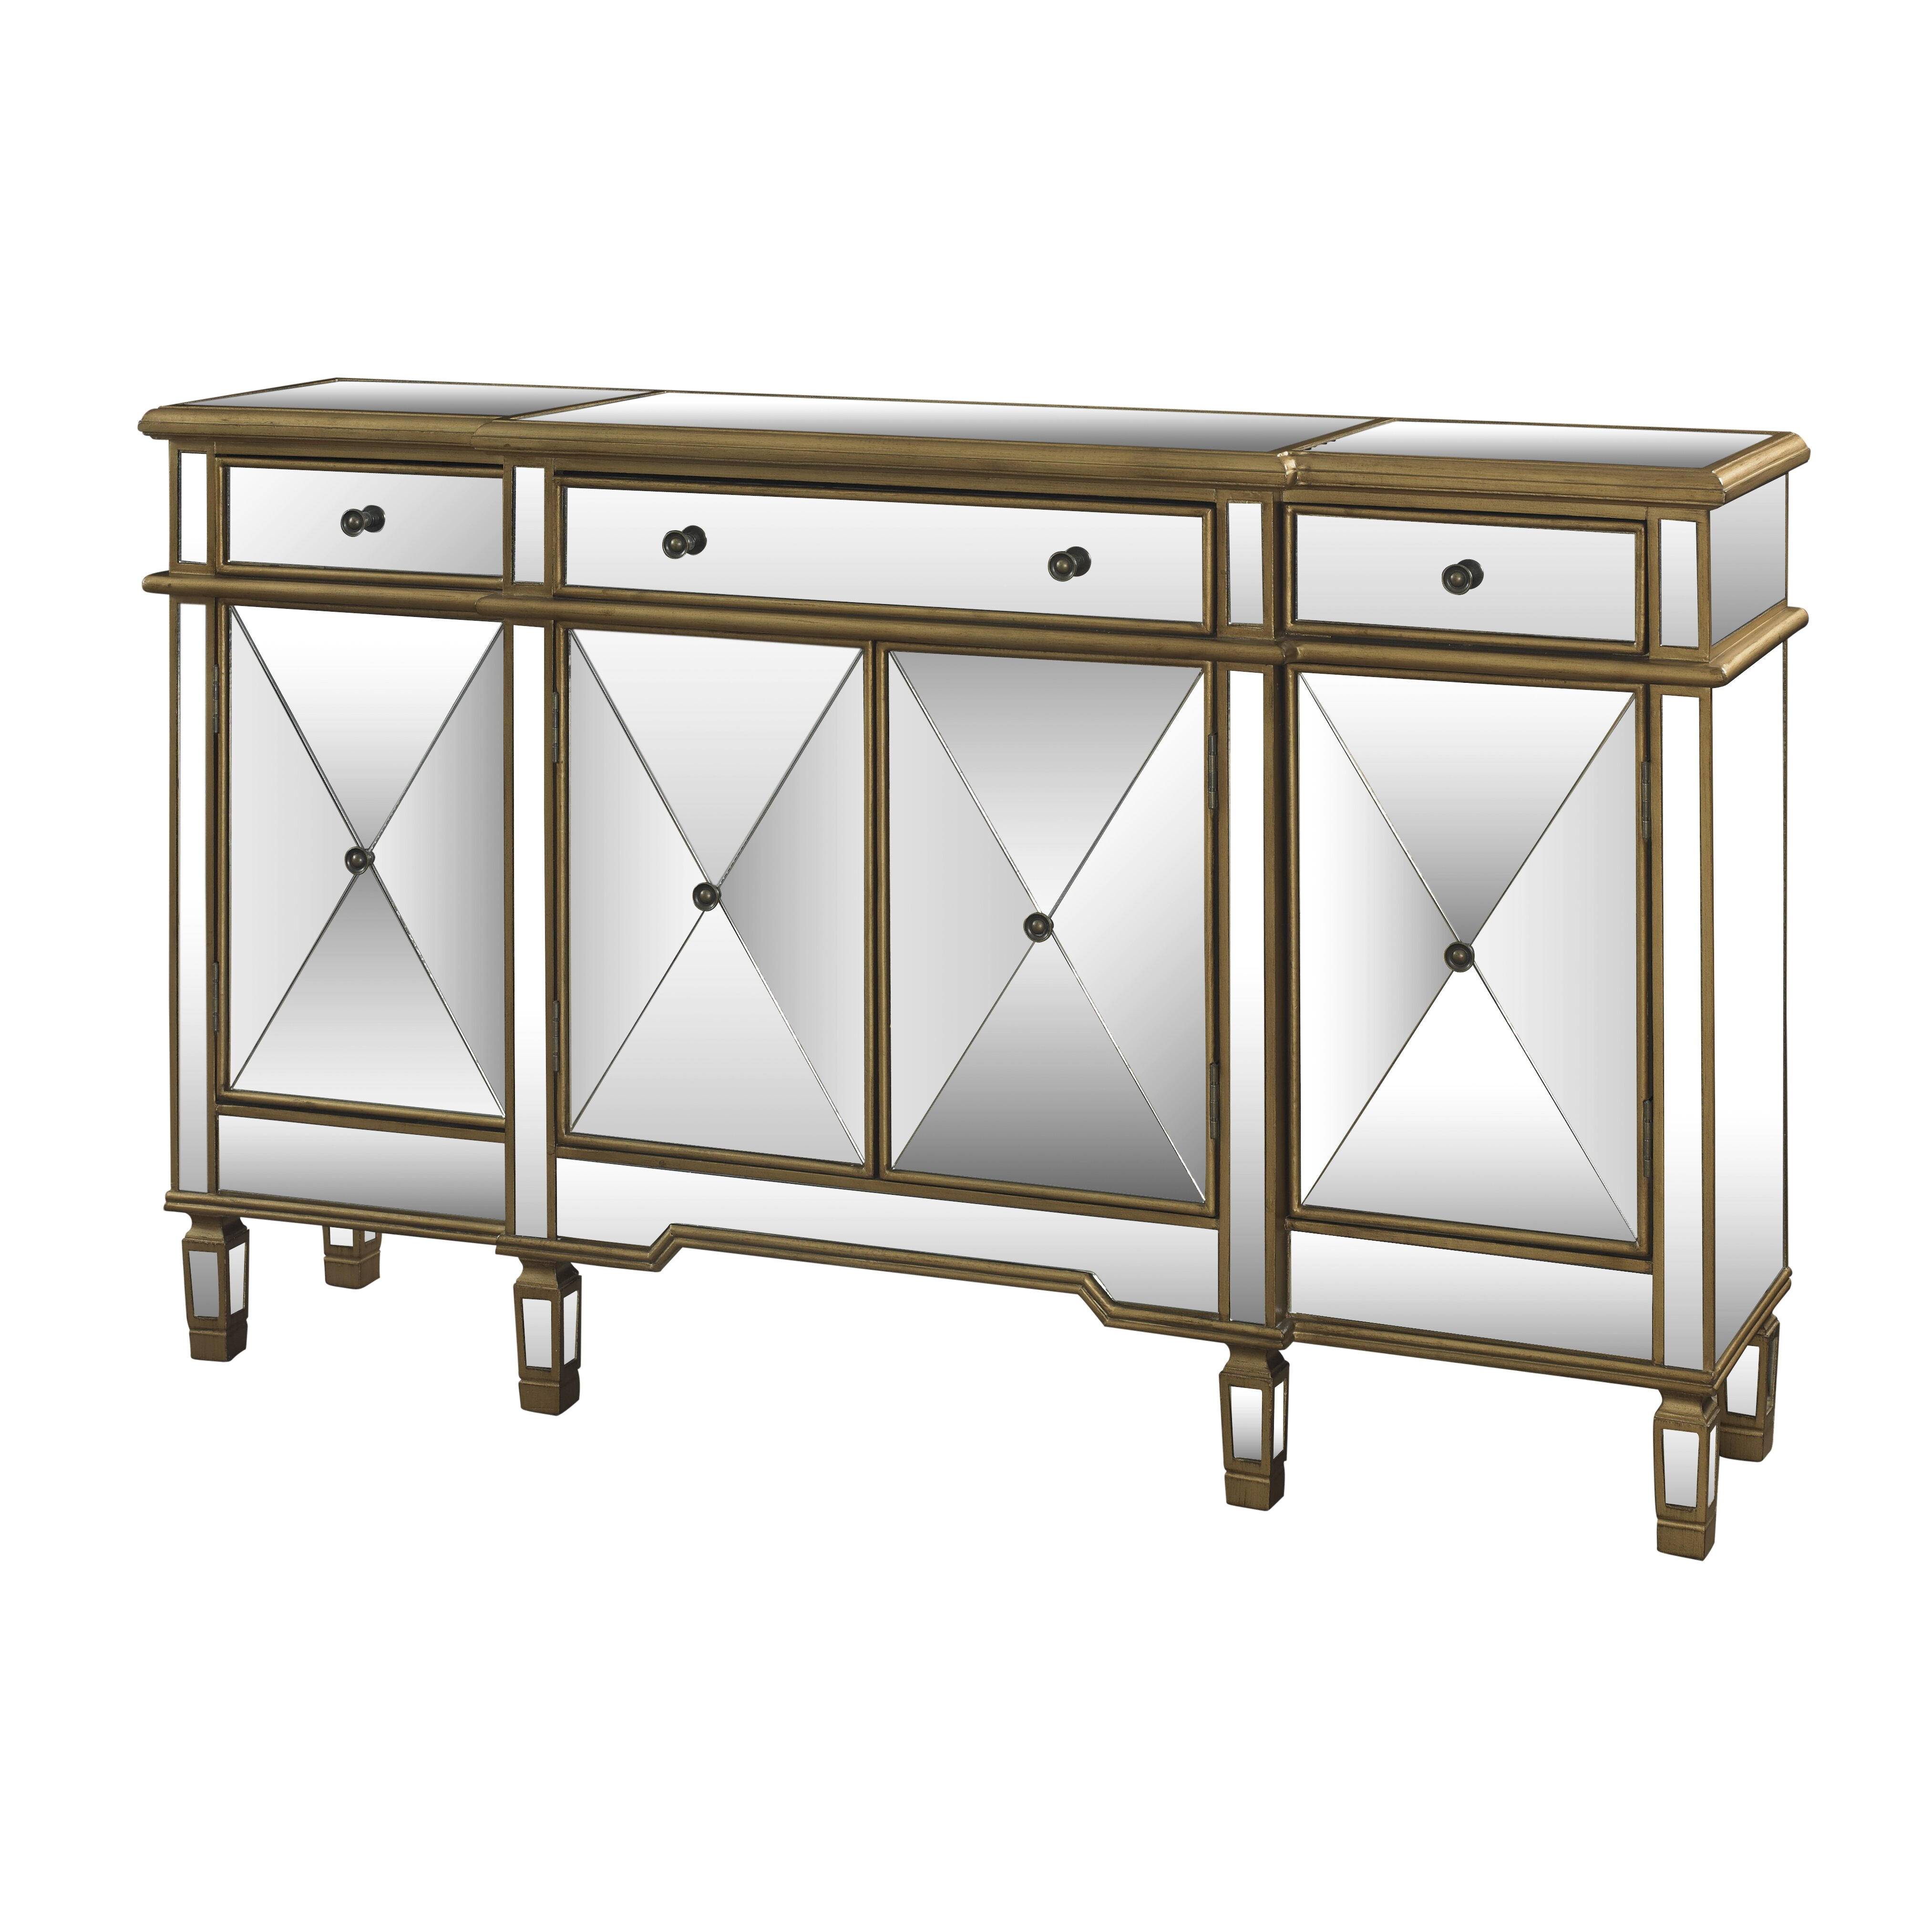 Mercer41 Jaffe 3 Drawer Mirrored Console Table & Reviews